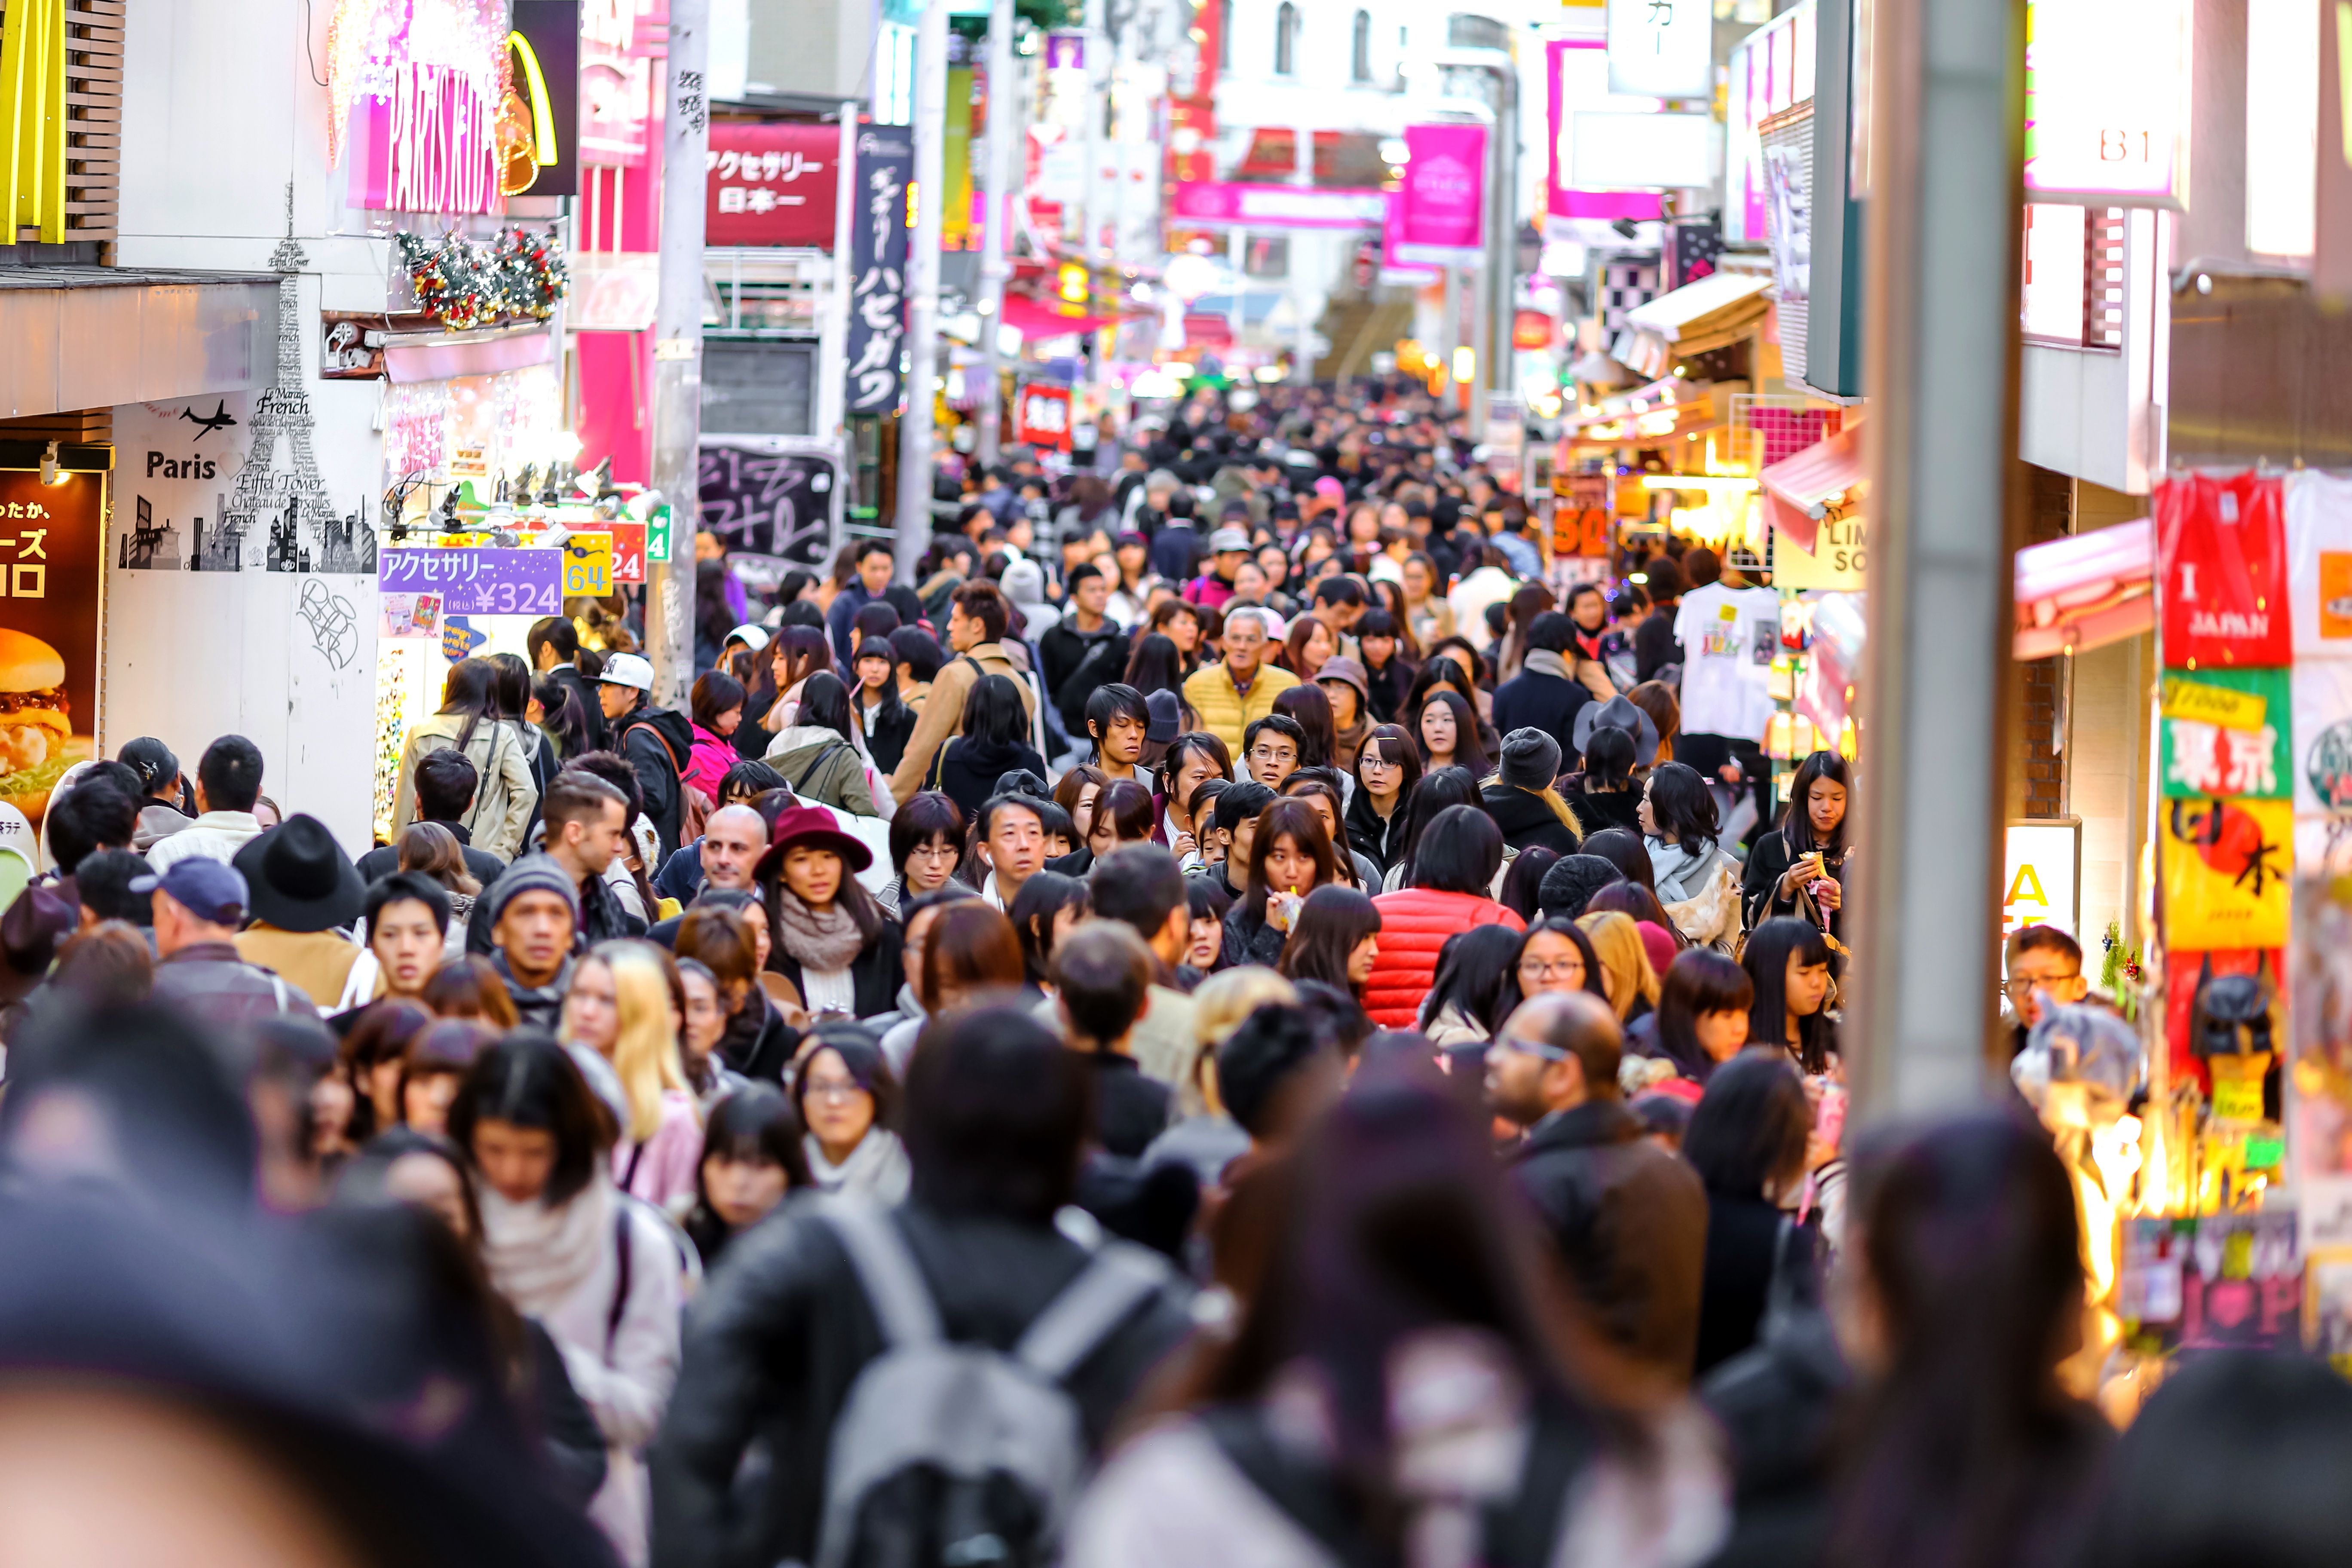 A very crowded street in Japan